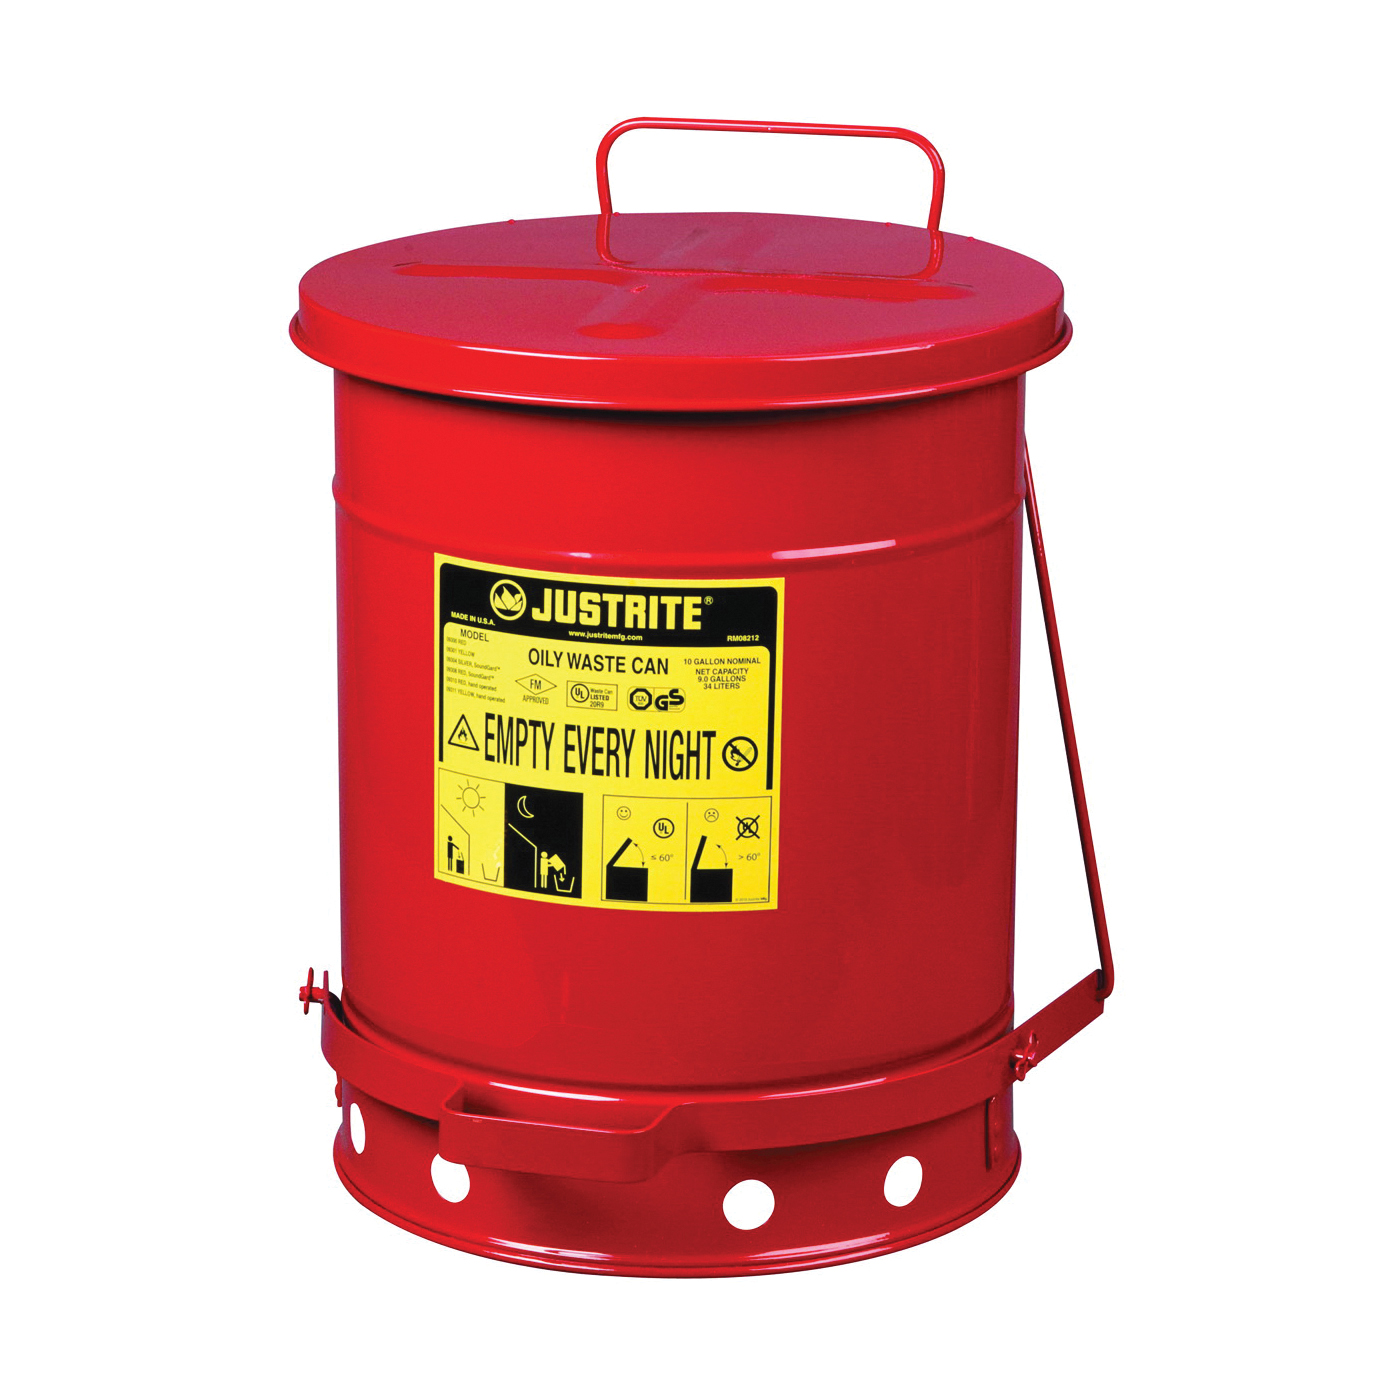 Picture of JUSTRITE 09300 Waste Can, 10 gal Capacity, Steel, Red, Foot-Operated Self-Closing Closure